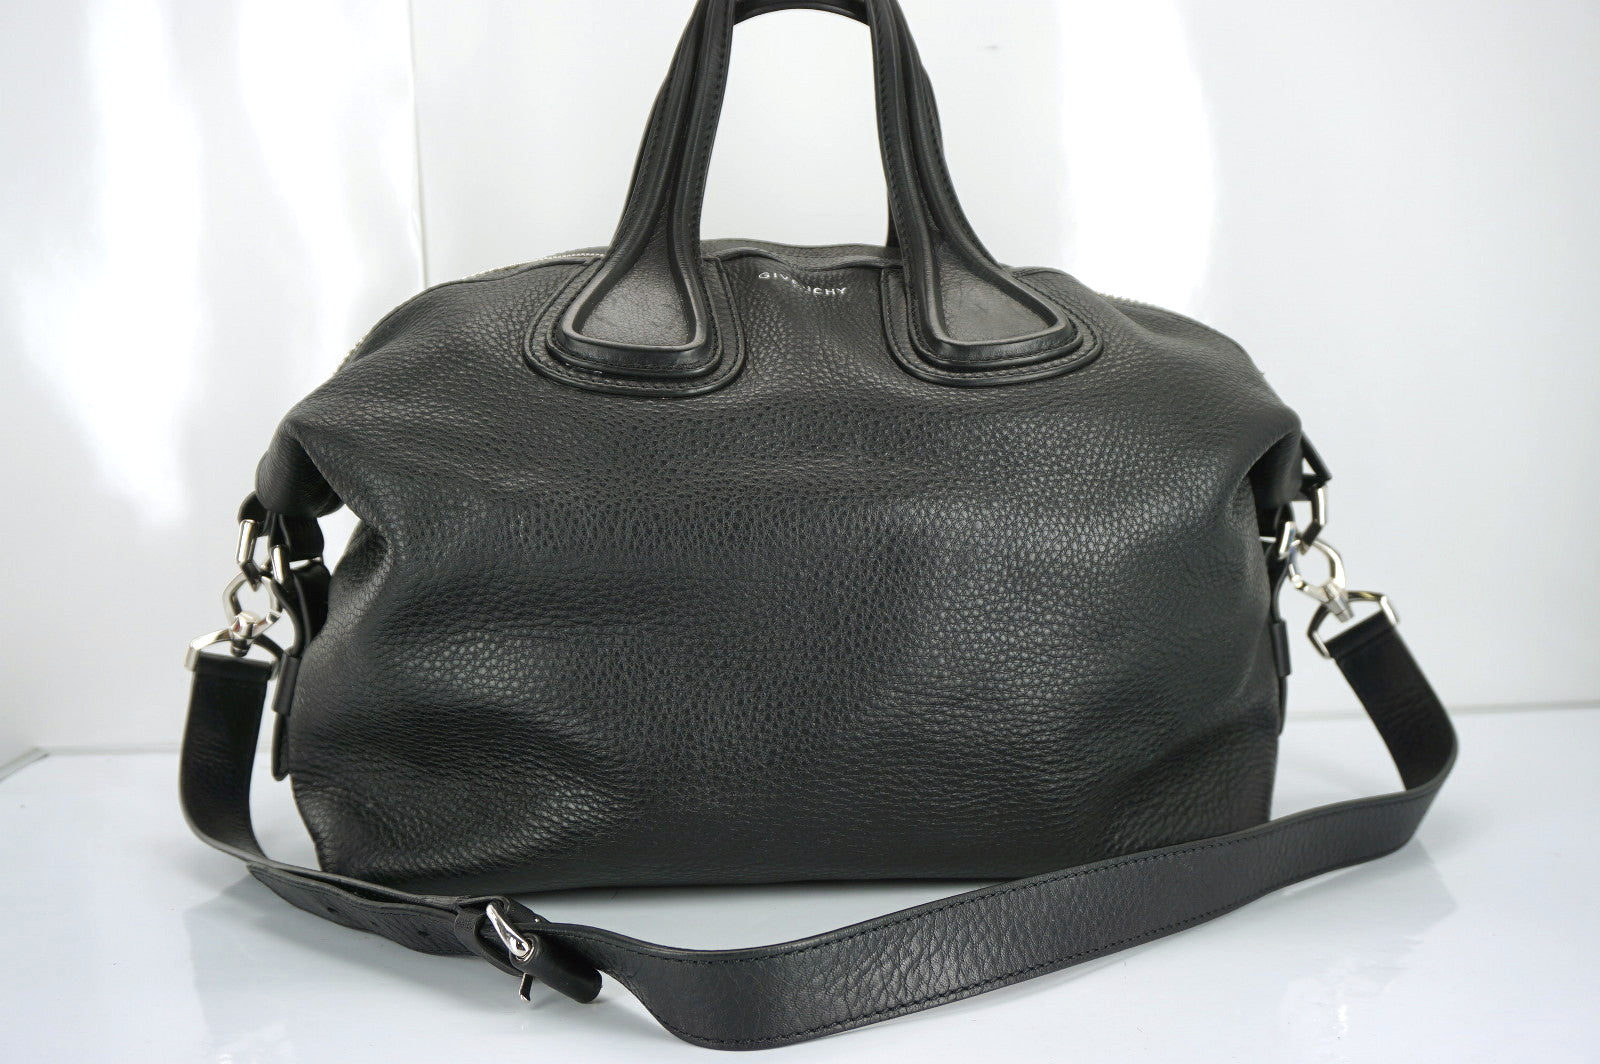 Givenchy Black Leather Nightengale Medium Waxy Satchel Shoulder Bag $2450 New